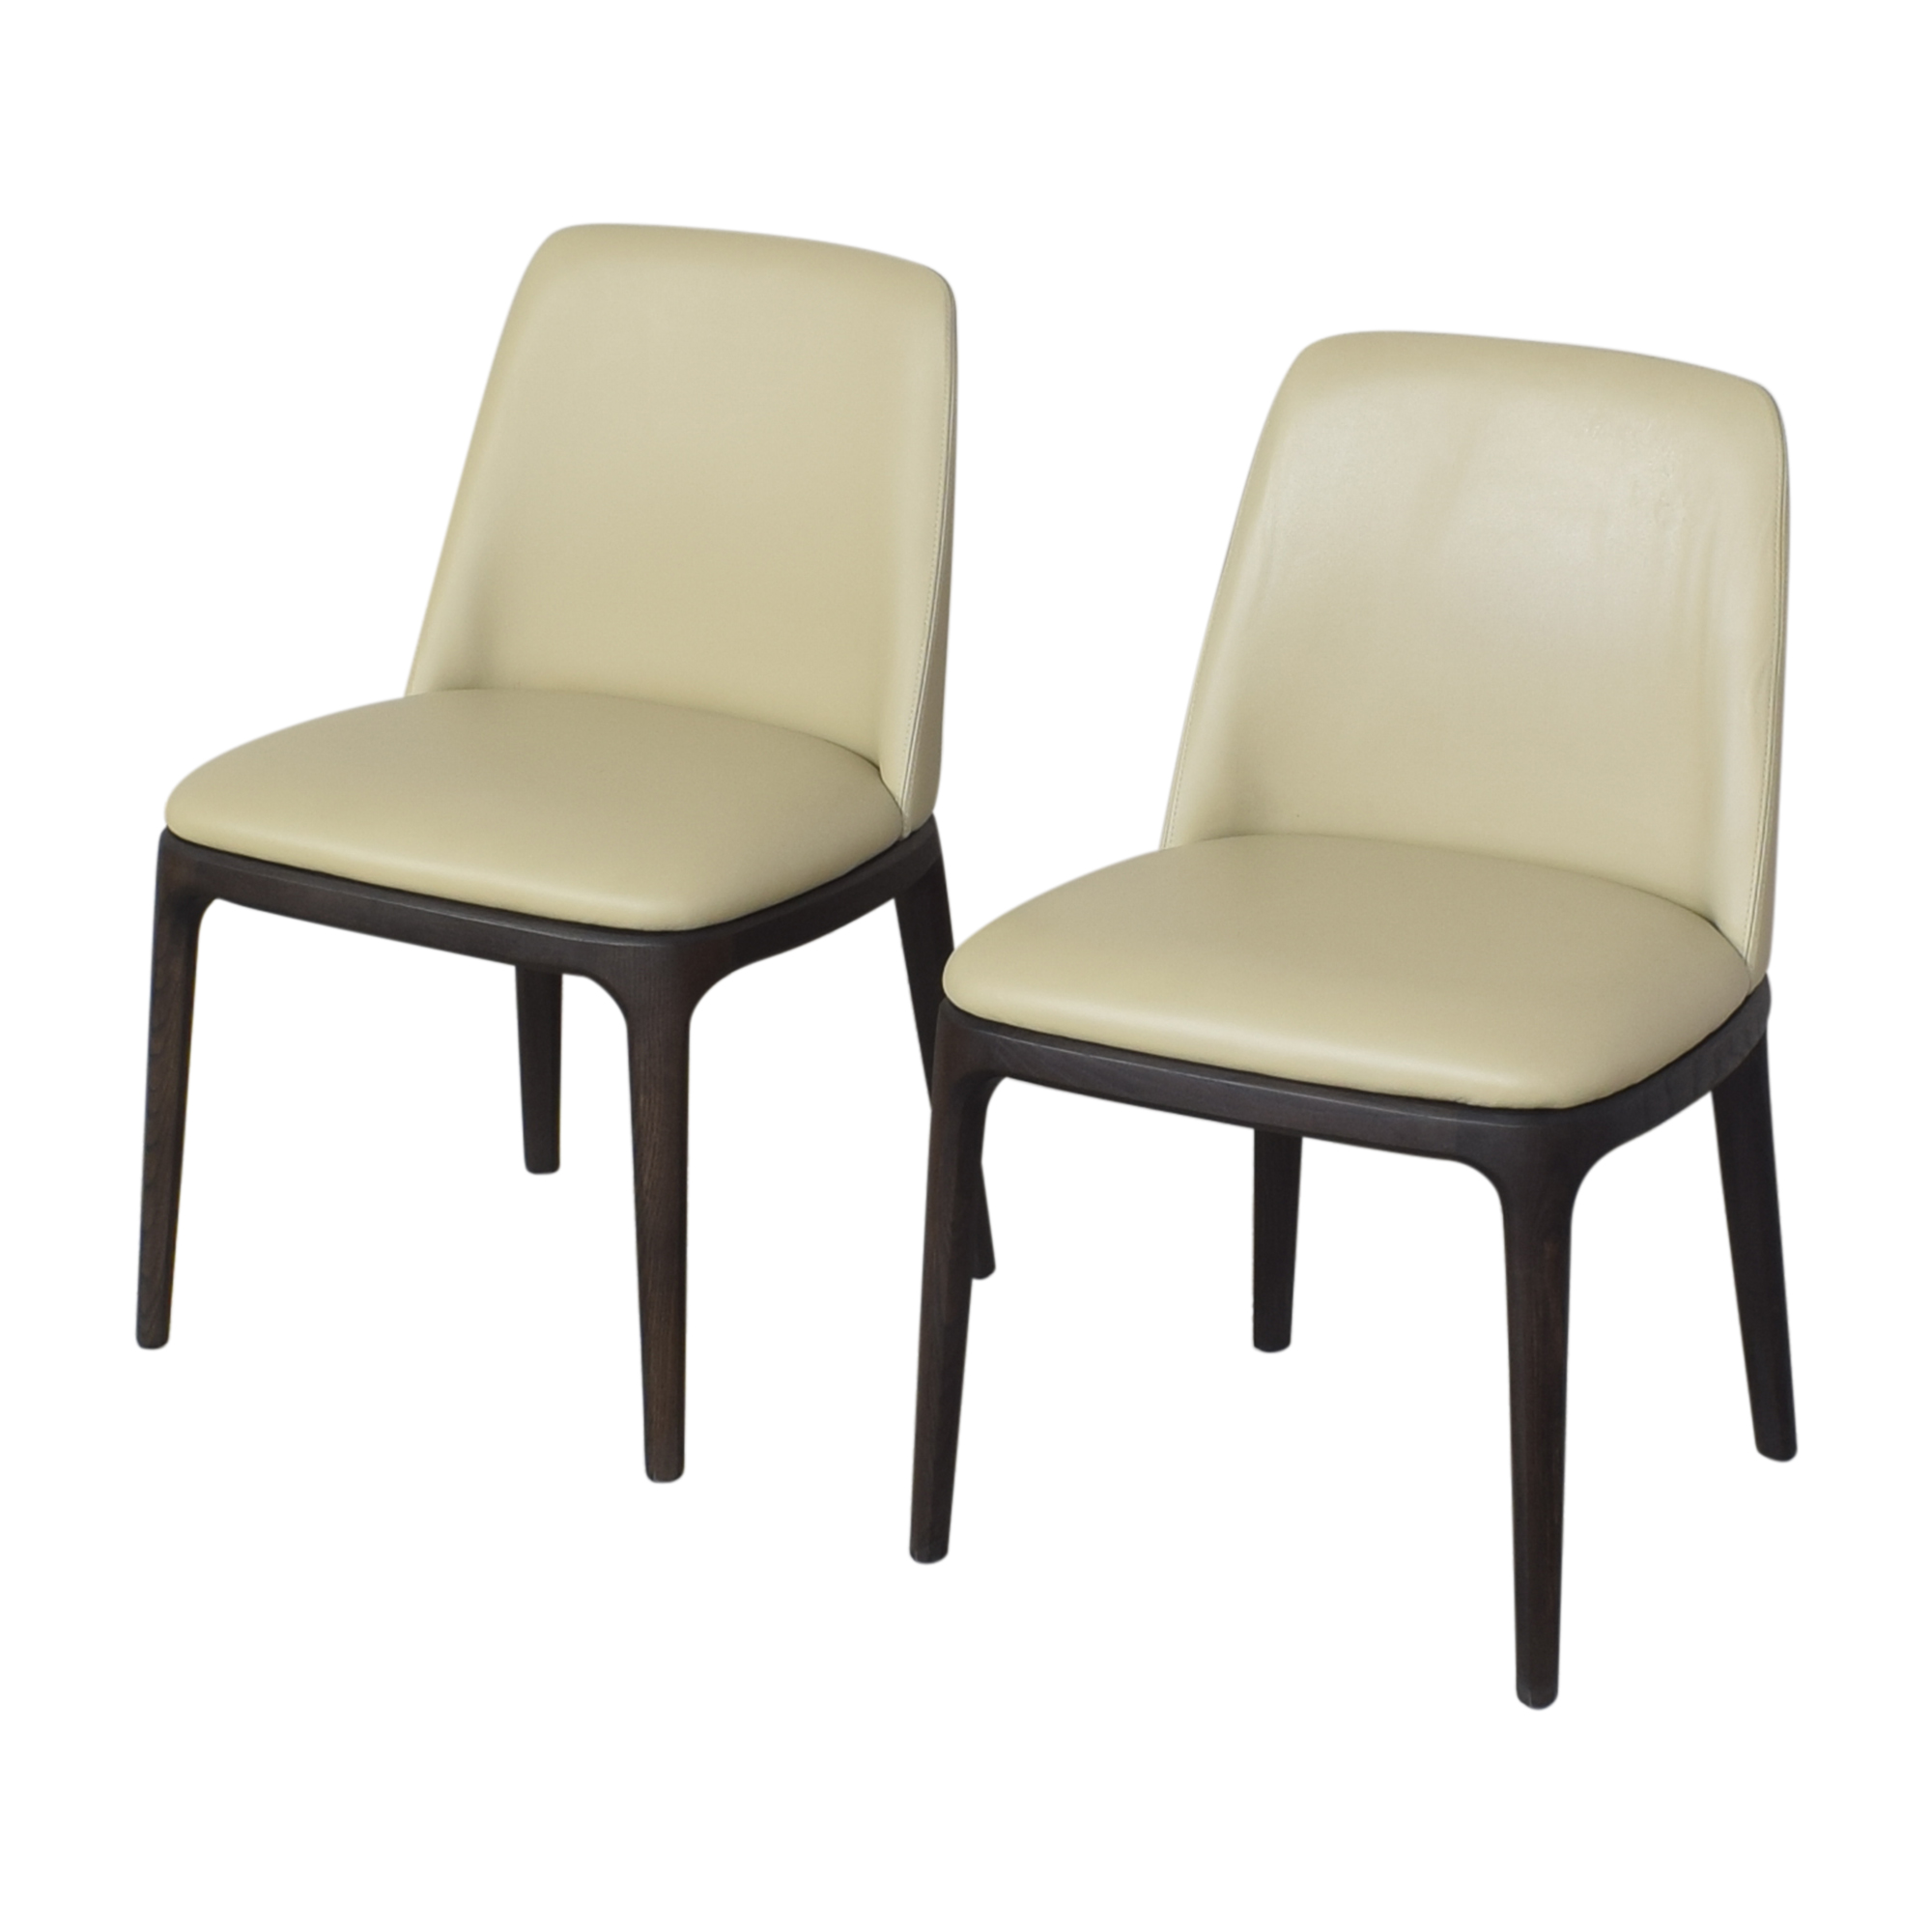 buy Poliform Grace Chairs Poliform Dining Chairs